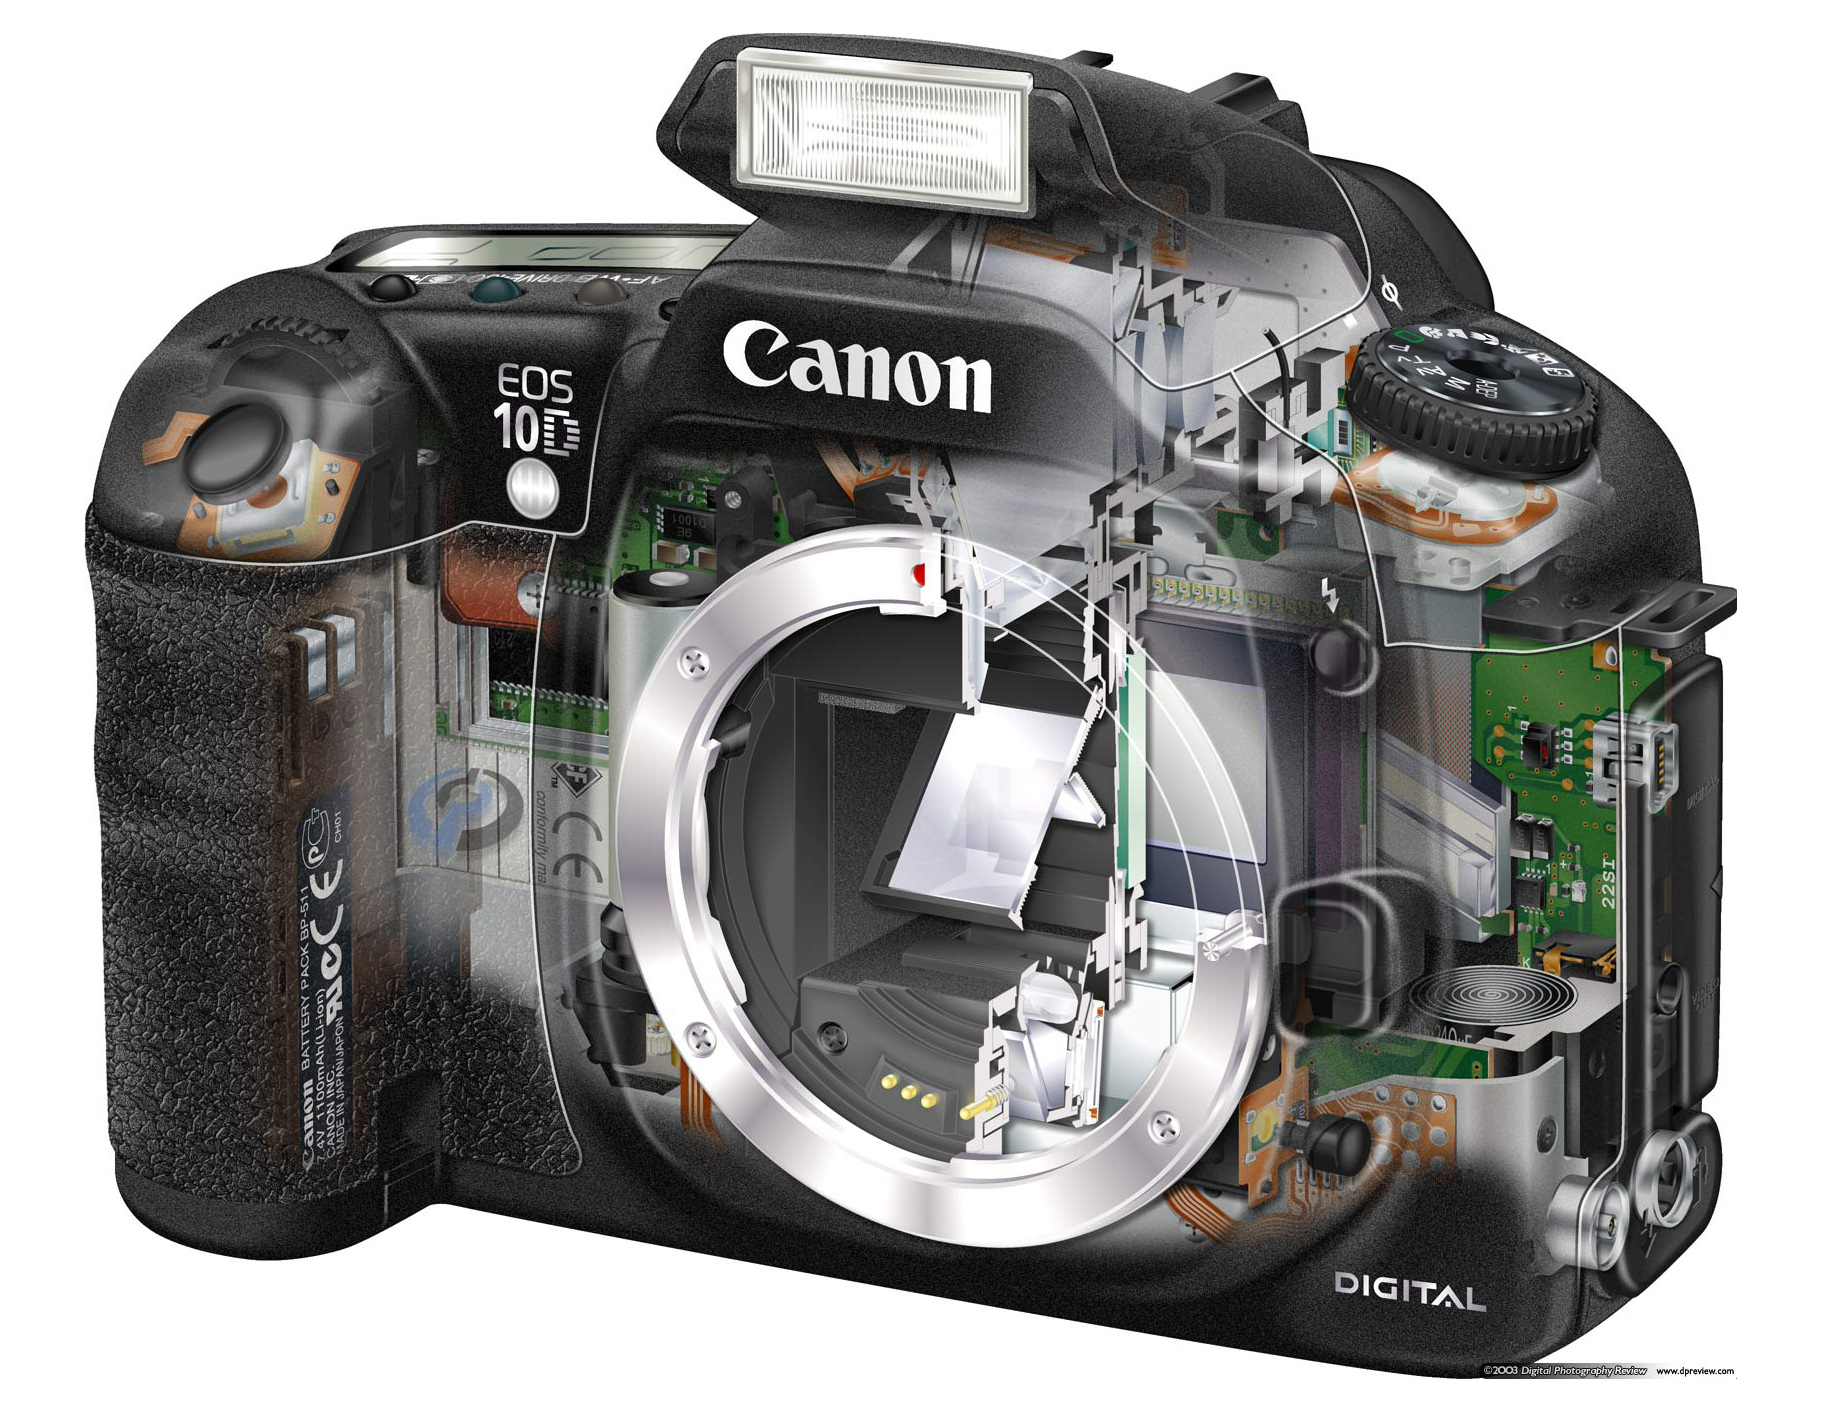 The 10D was a thoroughly modern camera in 2003 and remained on the market for some time Canon took the basic form factor of the D60 and modernized every